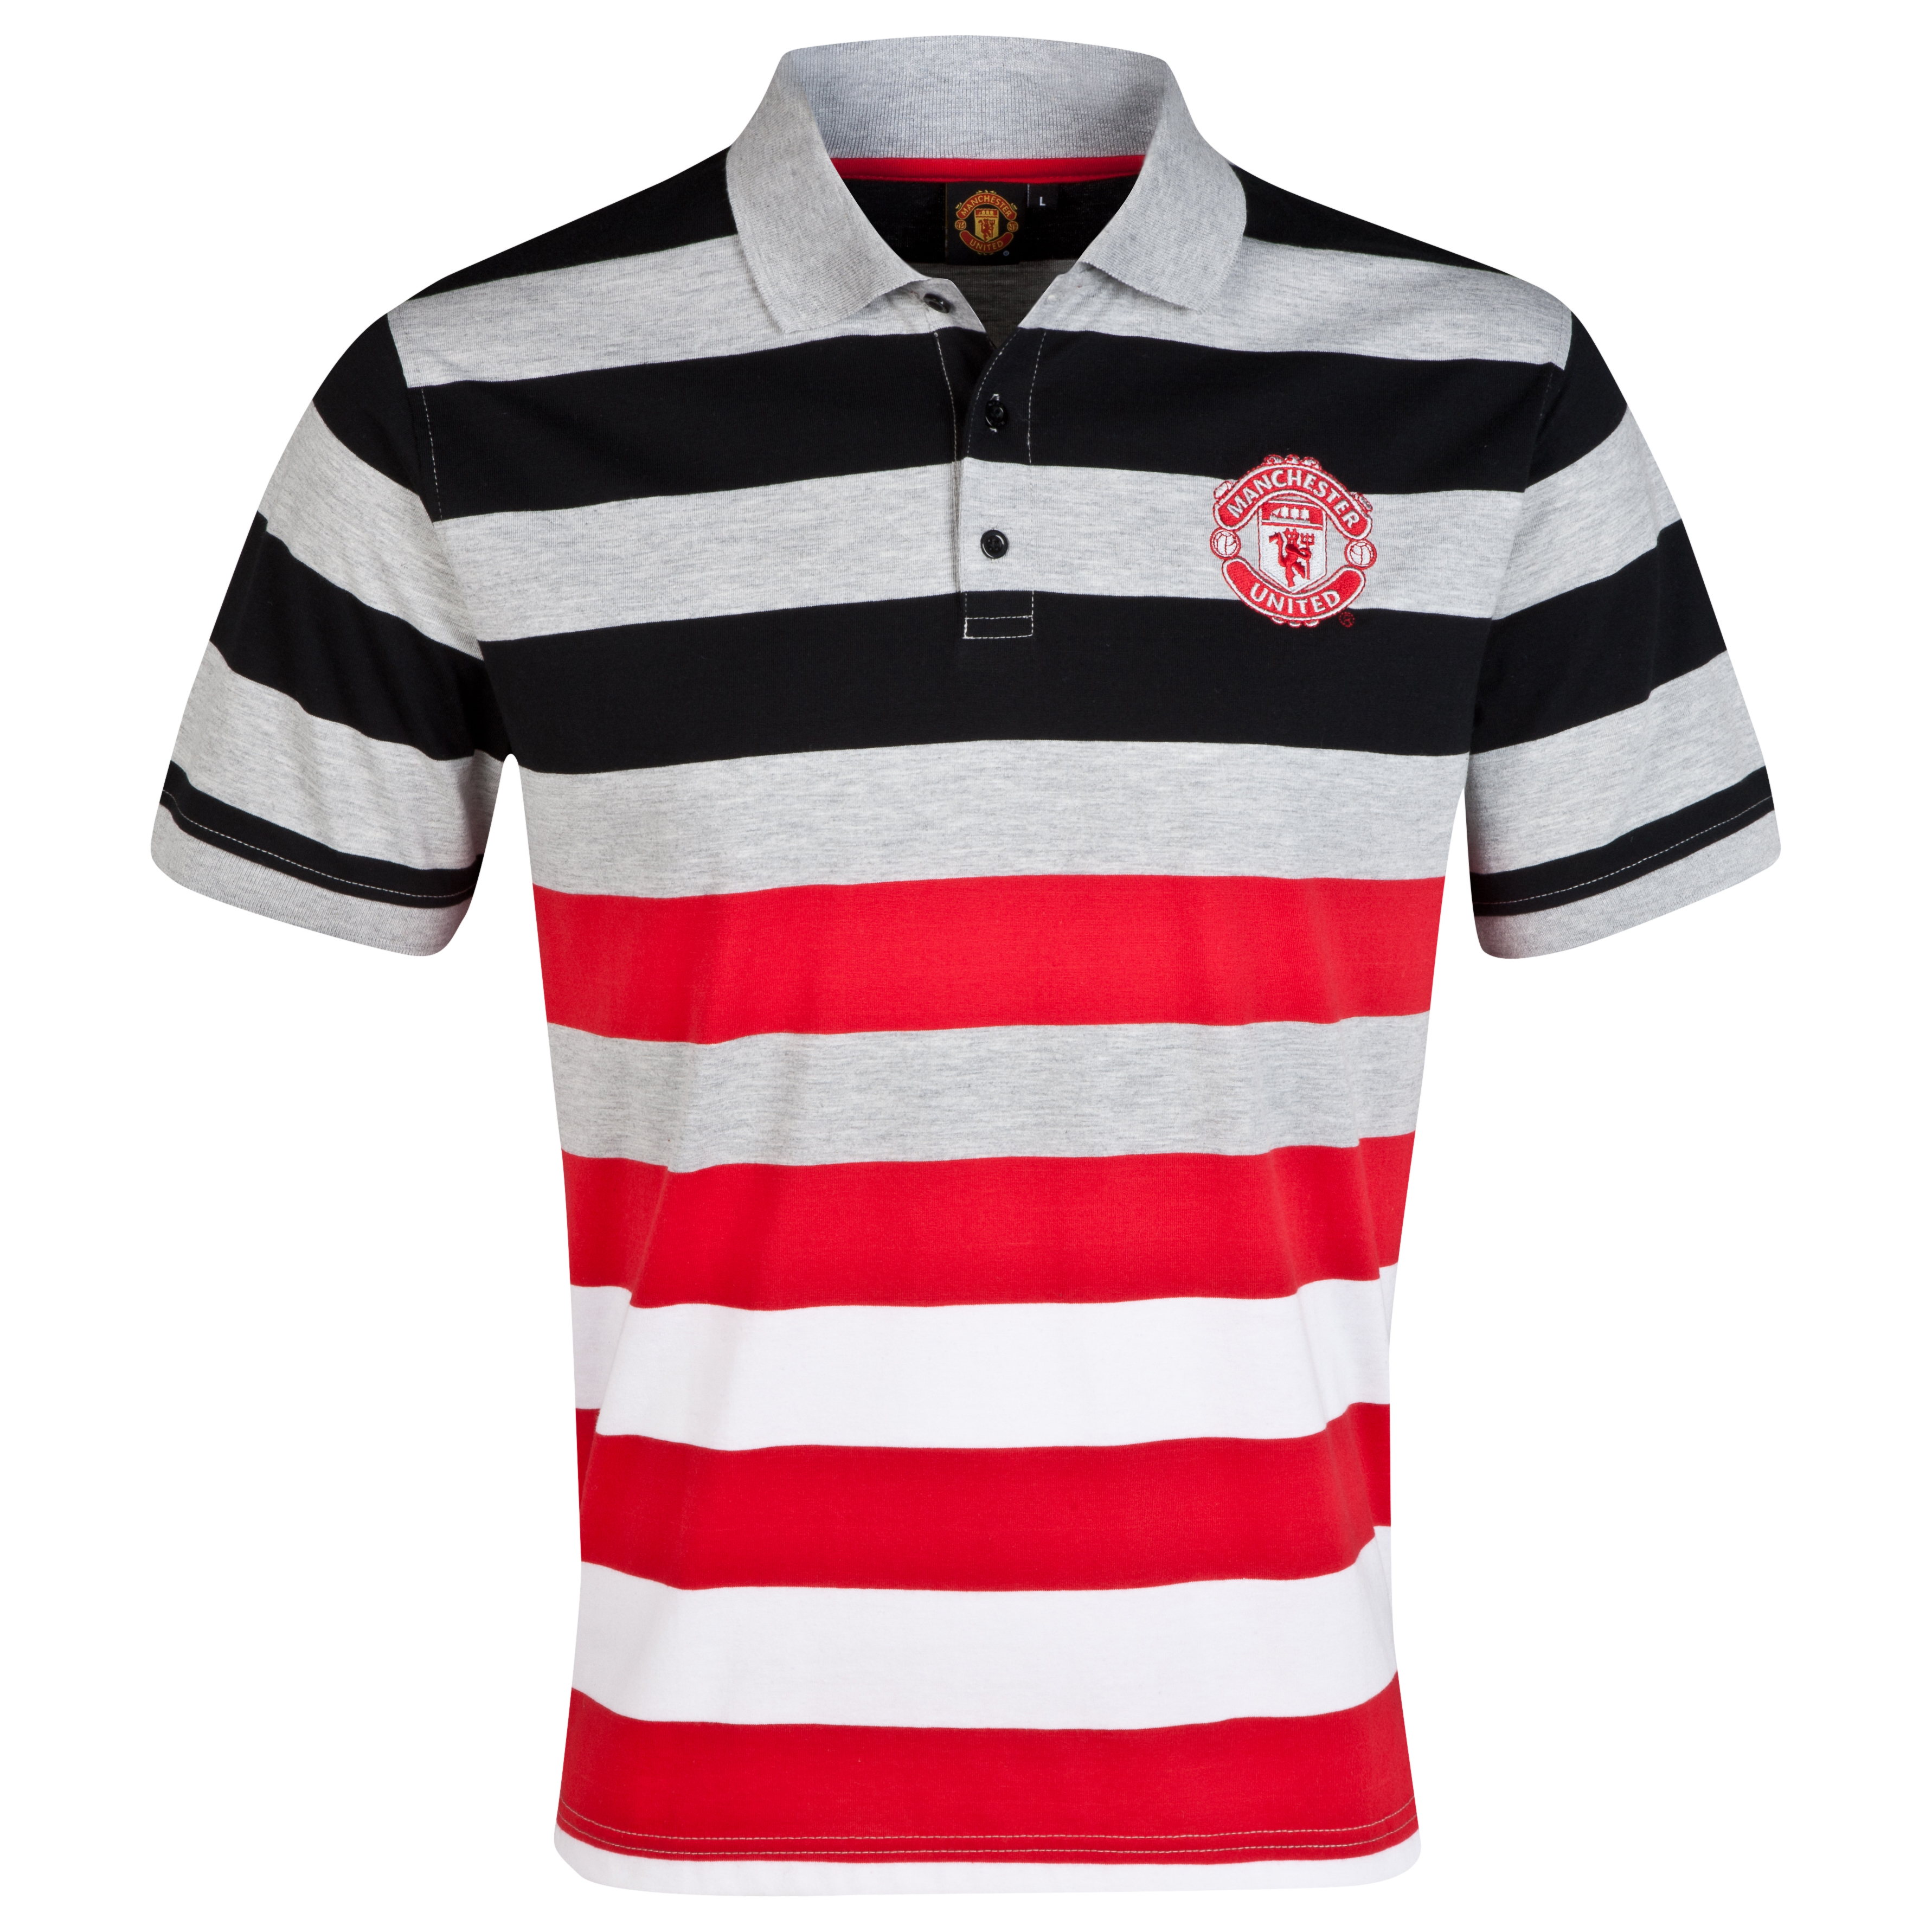 Manchester United Classic Striped Polo Shirt - Mens Multi